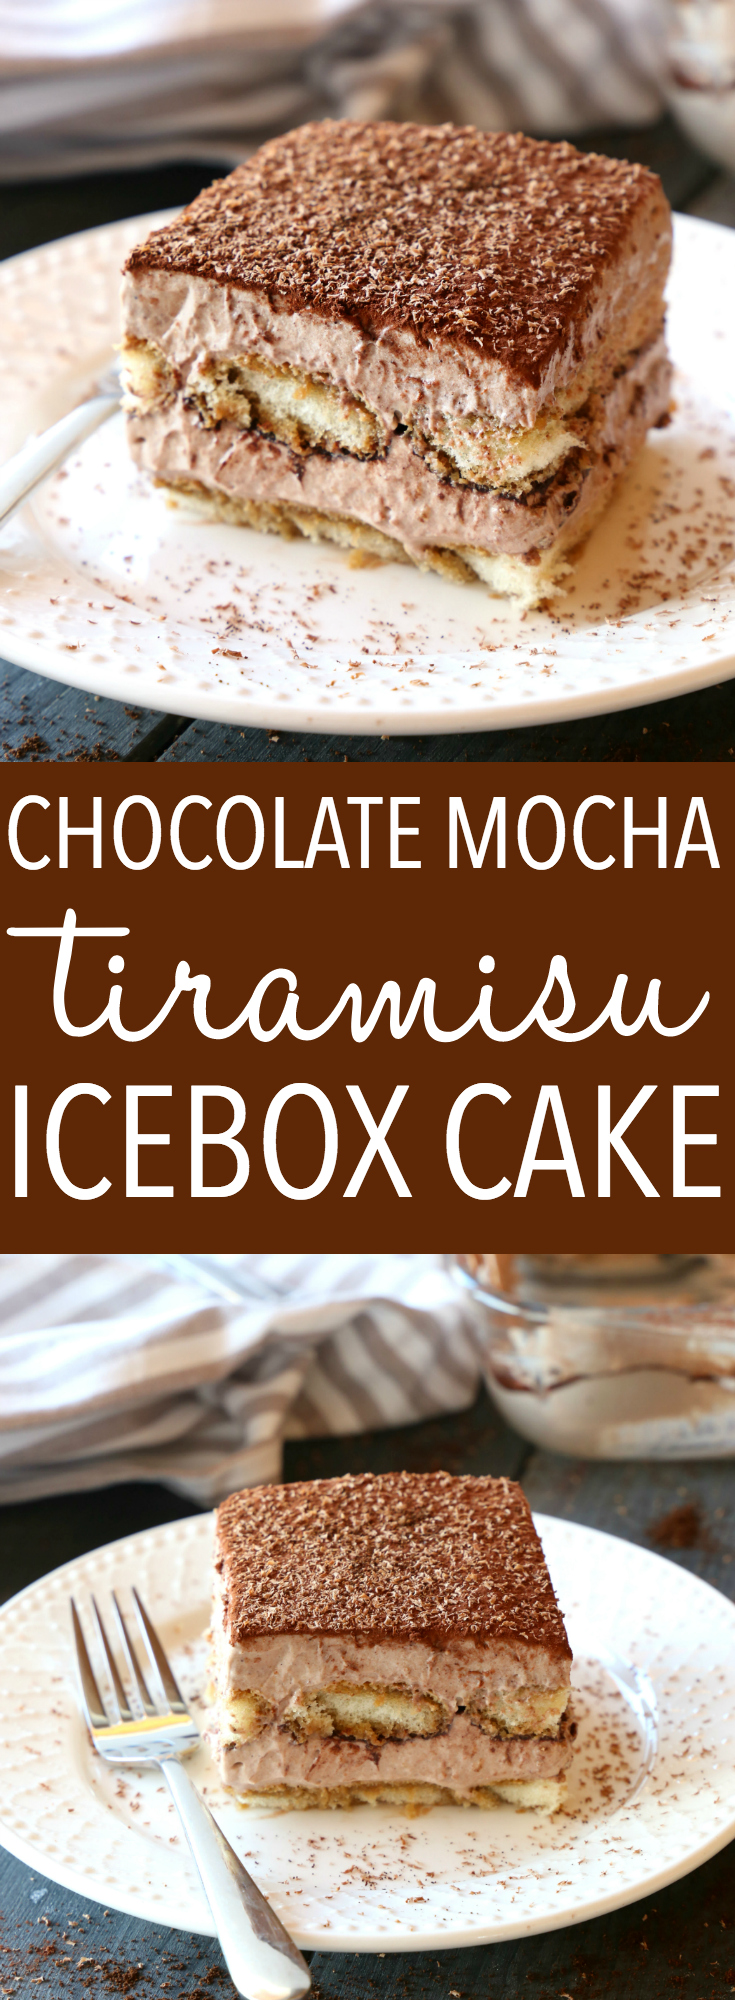 This Chocolate Mocha Tiramisu Icebox Cake is the perfect easy no bake dessert for coffee and chocolate lovers! Made with simple, basic ingredients and bursting with deep chocolate and coffee flavours, this is a no bake dessert that's a definite crowd pleaser! Recipe from thebusybaker.ca! #easytiramisurecipe #chocolatetiramisu #nobaketiramisu #nobakecoffeedessert via @busybakerblog